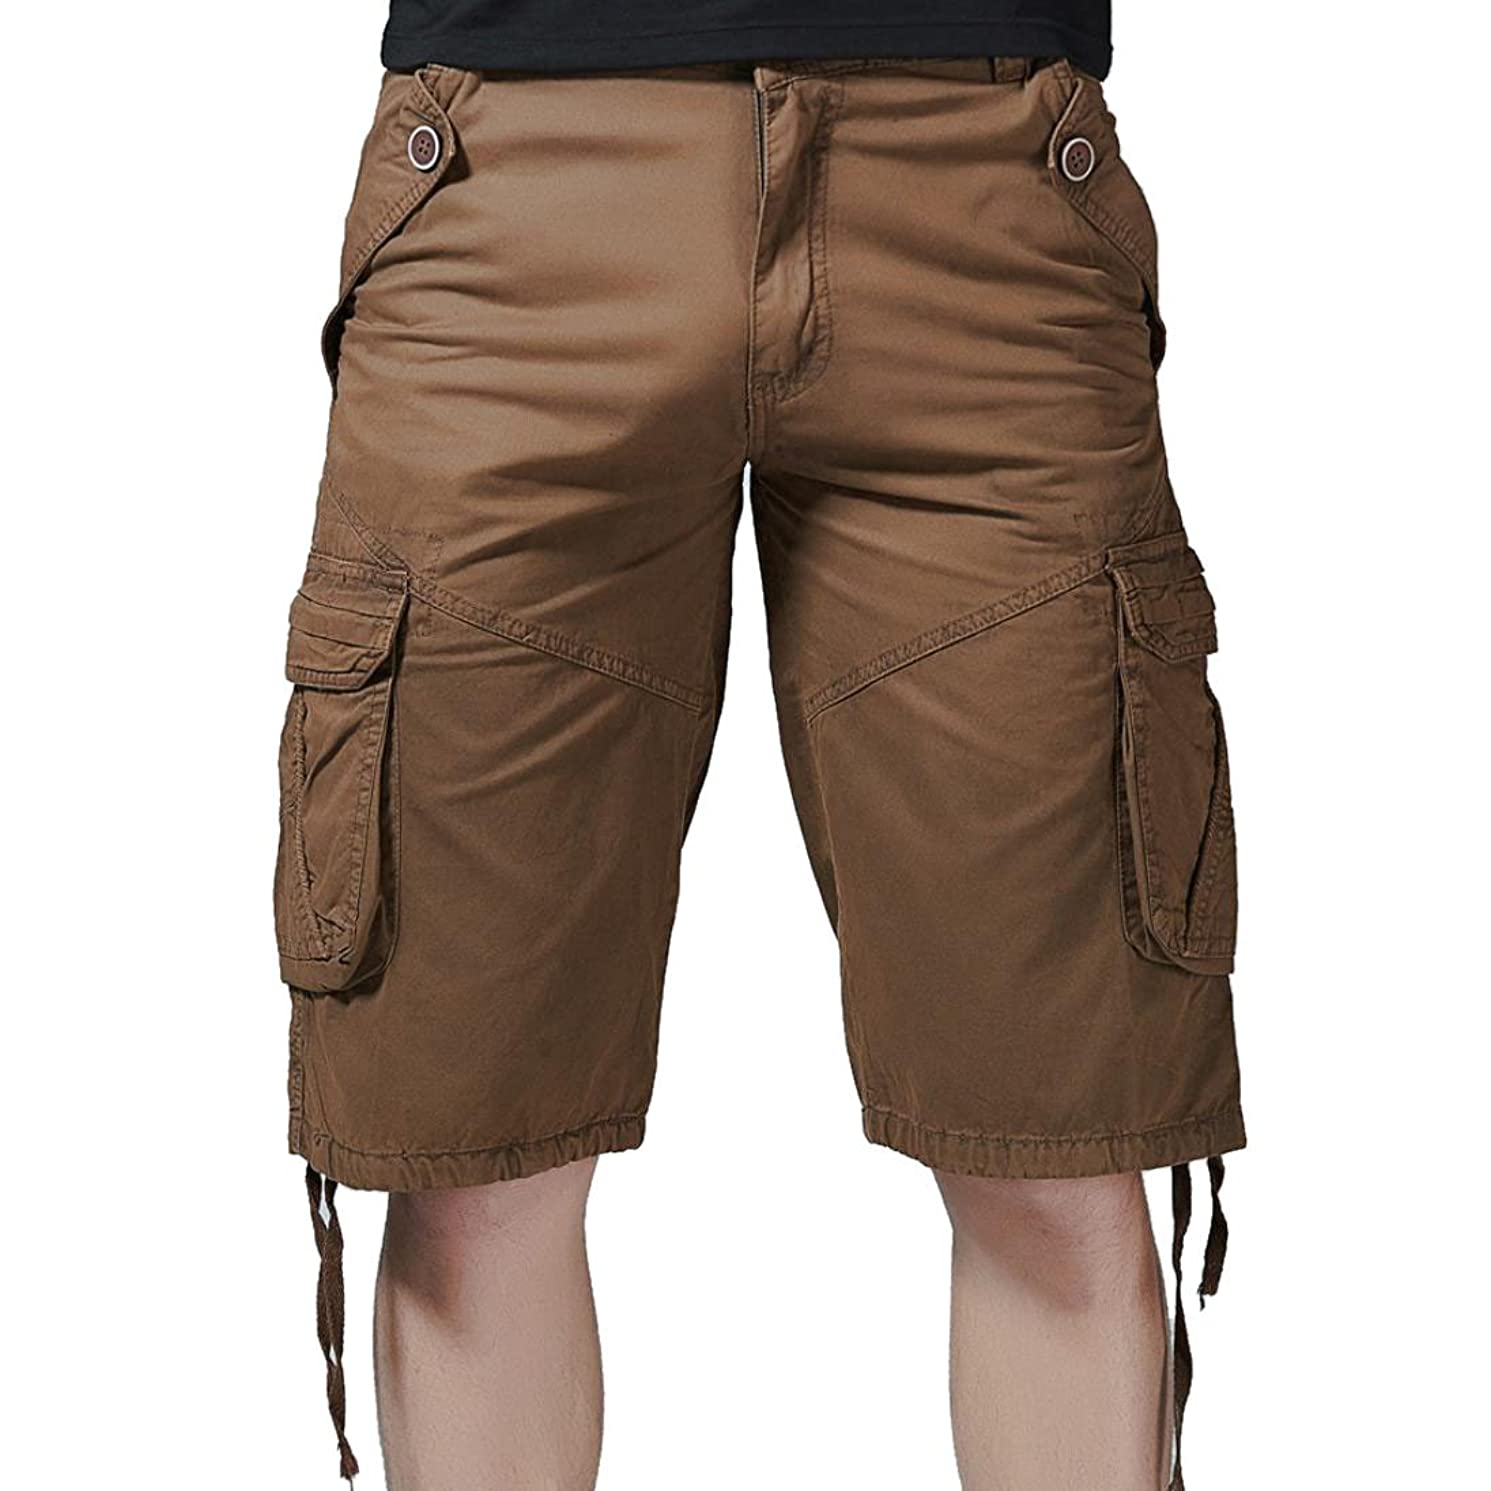 JJLIKER Men's Cotton Loose Fit Multi Pocket Cargo Shorts Outdoor Wear Lightweight Summer Fashion Trouser Pants